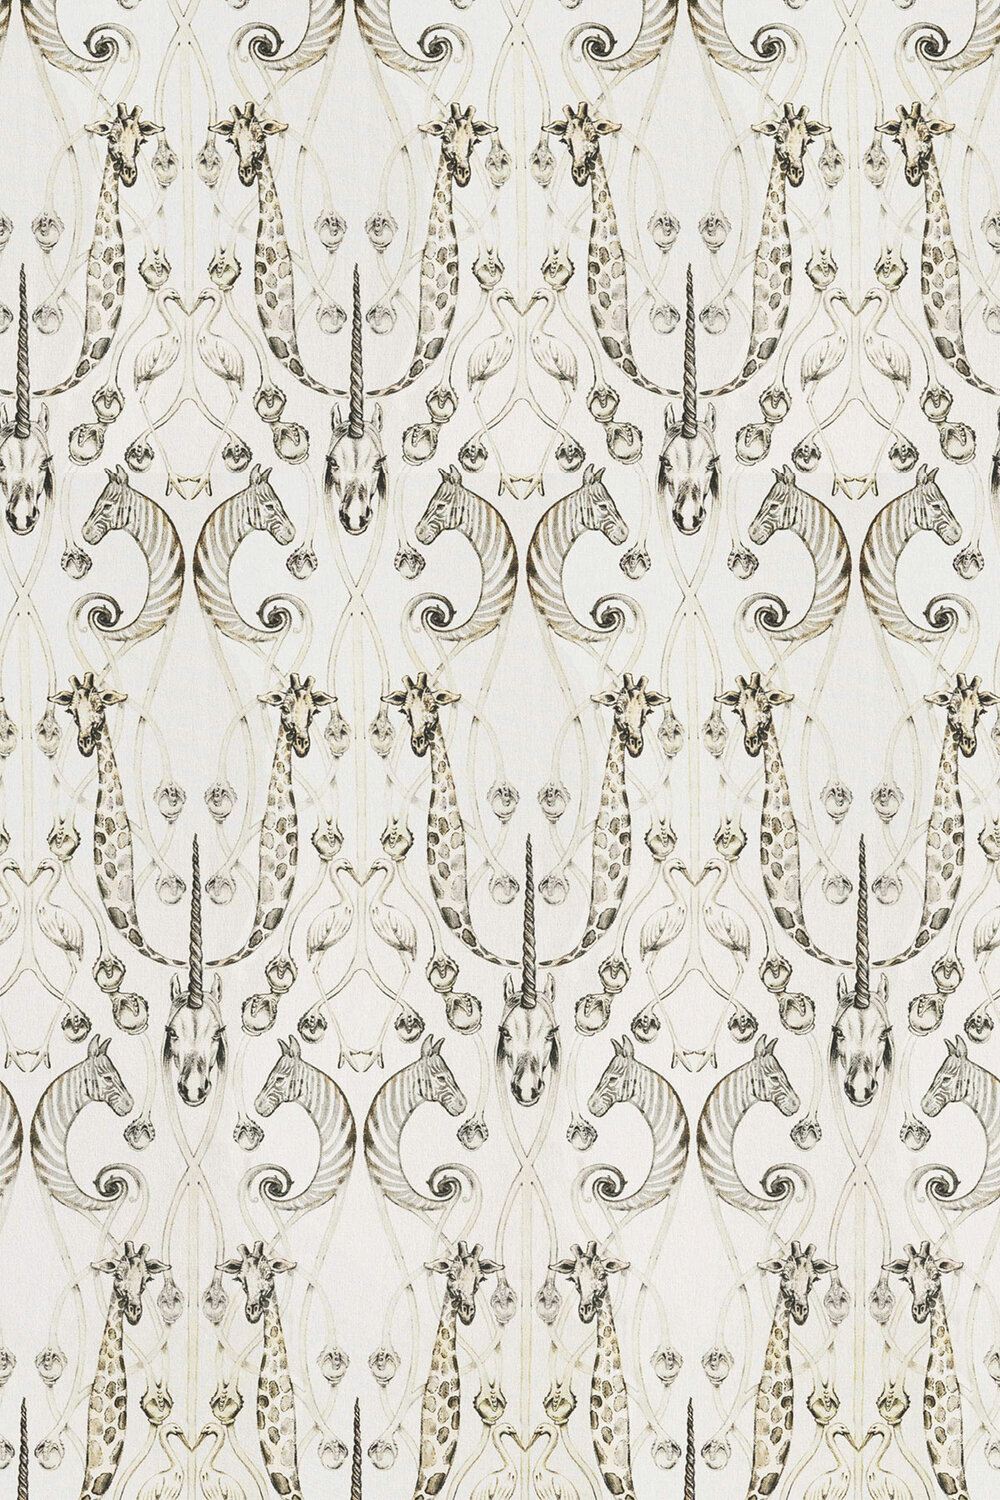 Le Chateau des Animaux  Fabric - Natural - by The Chateau by Angel Strawbridge